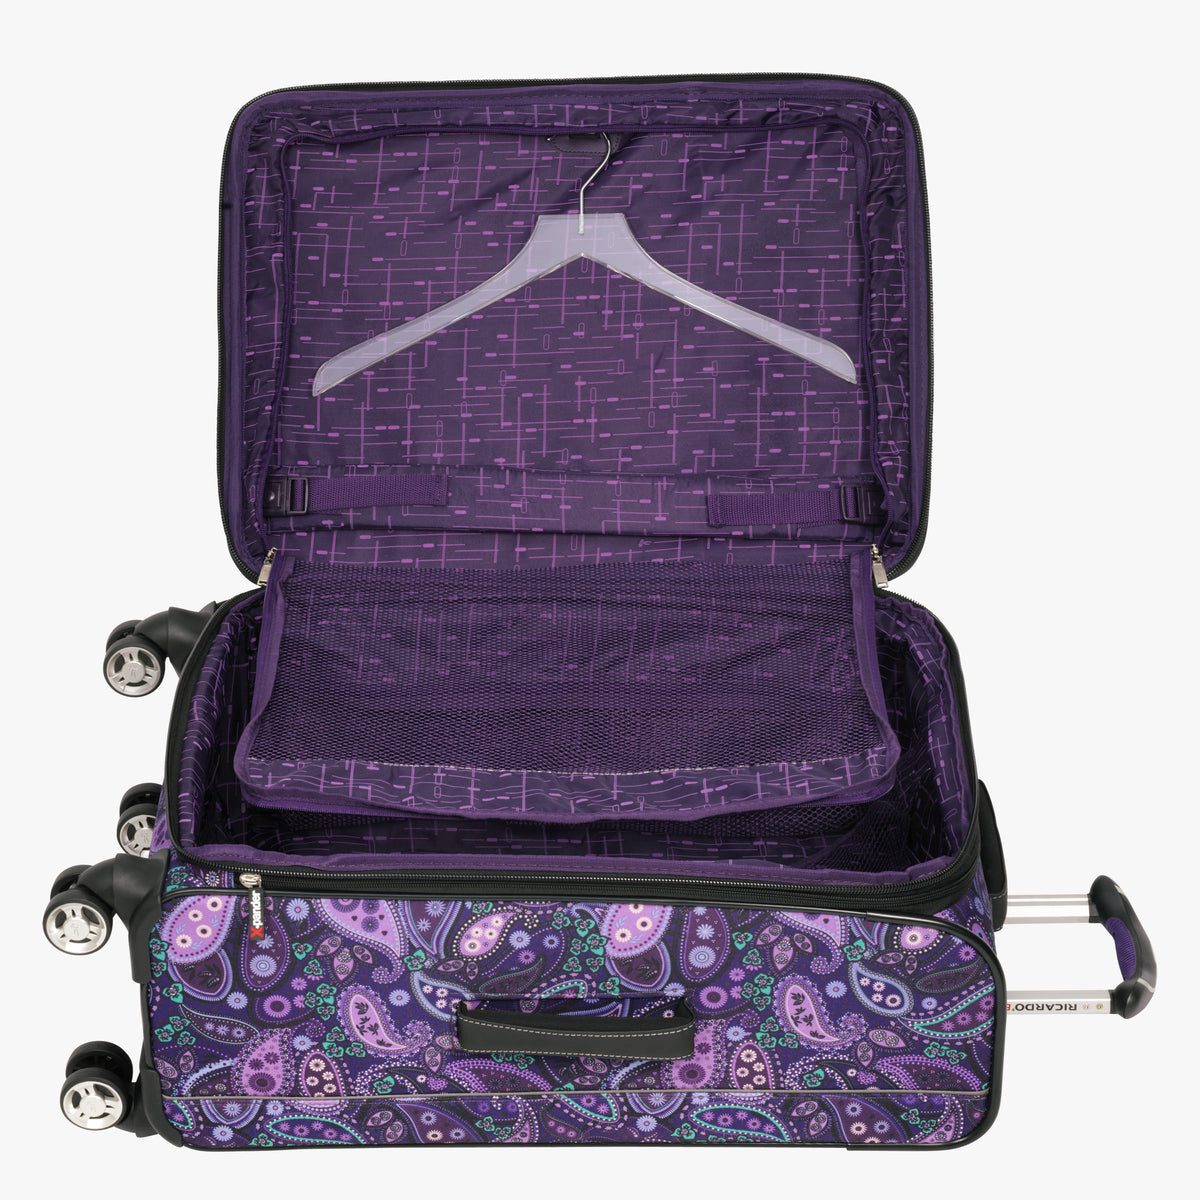 ... Medium Check-In Mar Vista 24-Inch Check-In Suitcase in Purple Paisley  ... 55676b681ca03